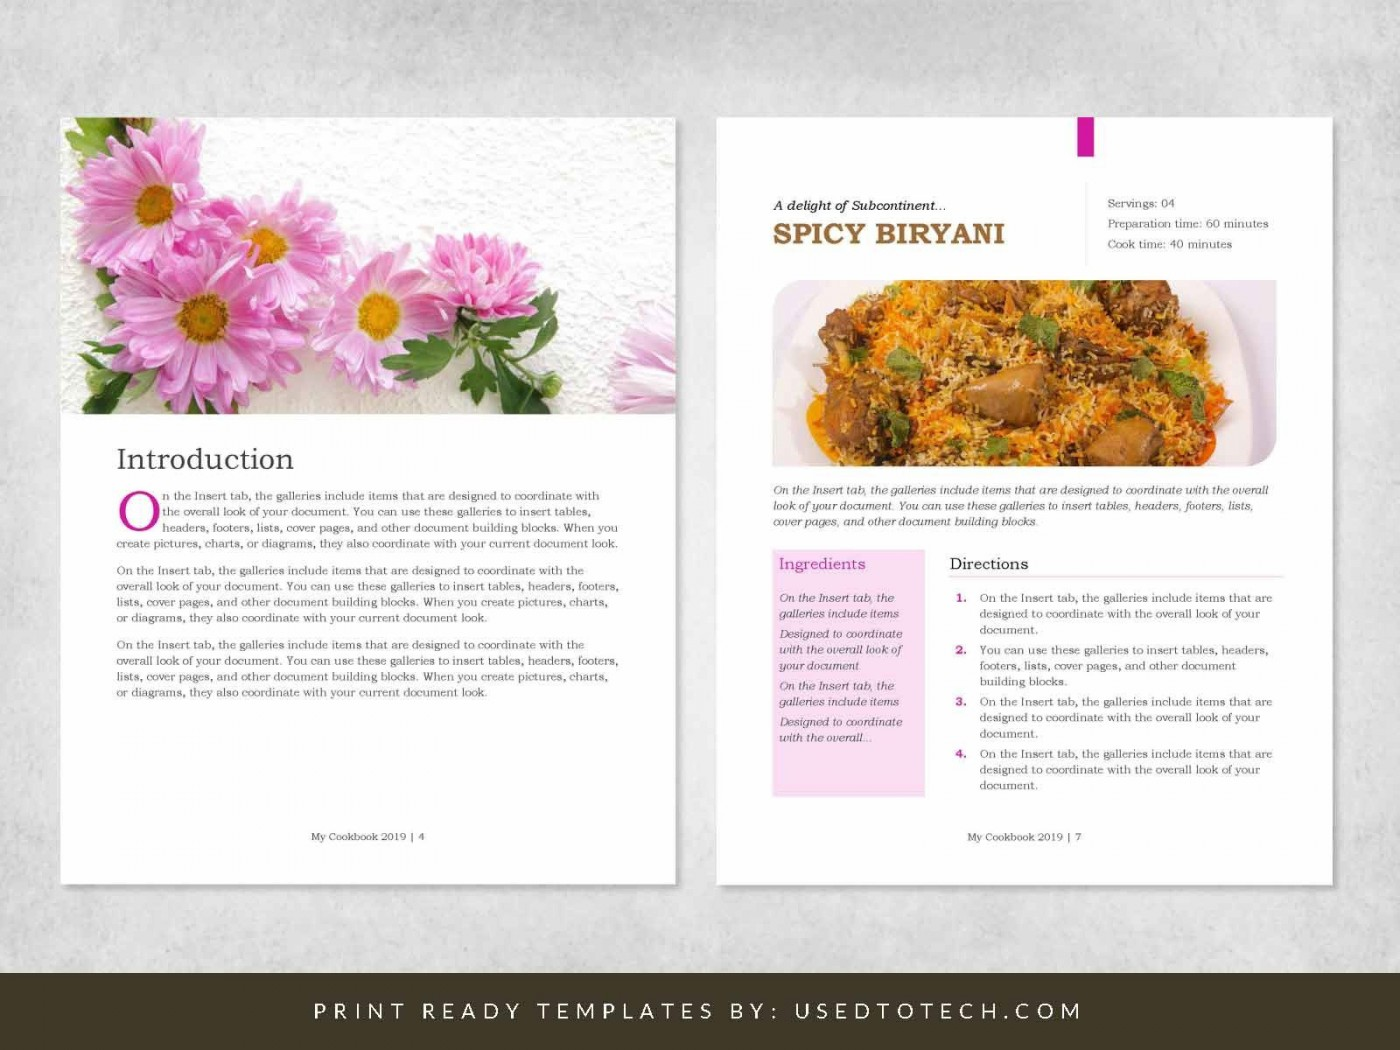 000 Simple Free Make Your Own Cookbook Template Download Inspiration 1400